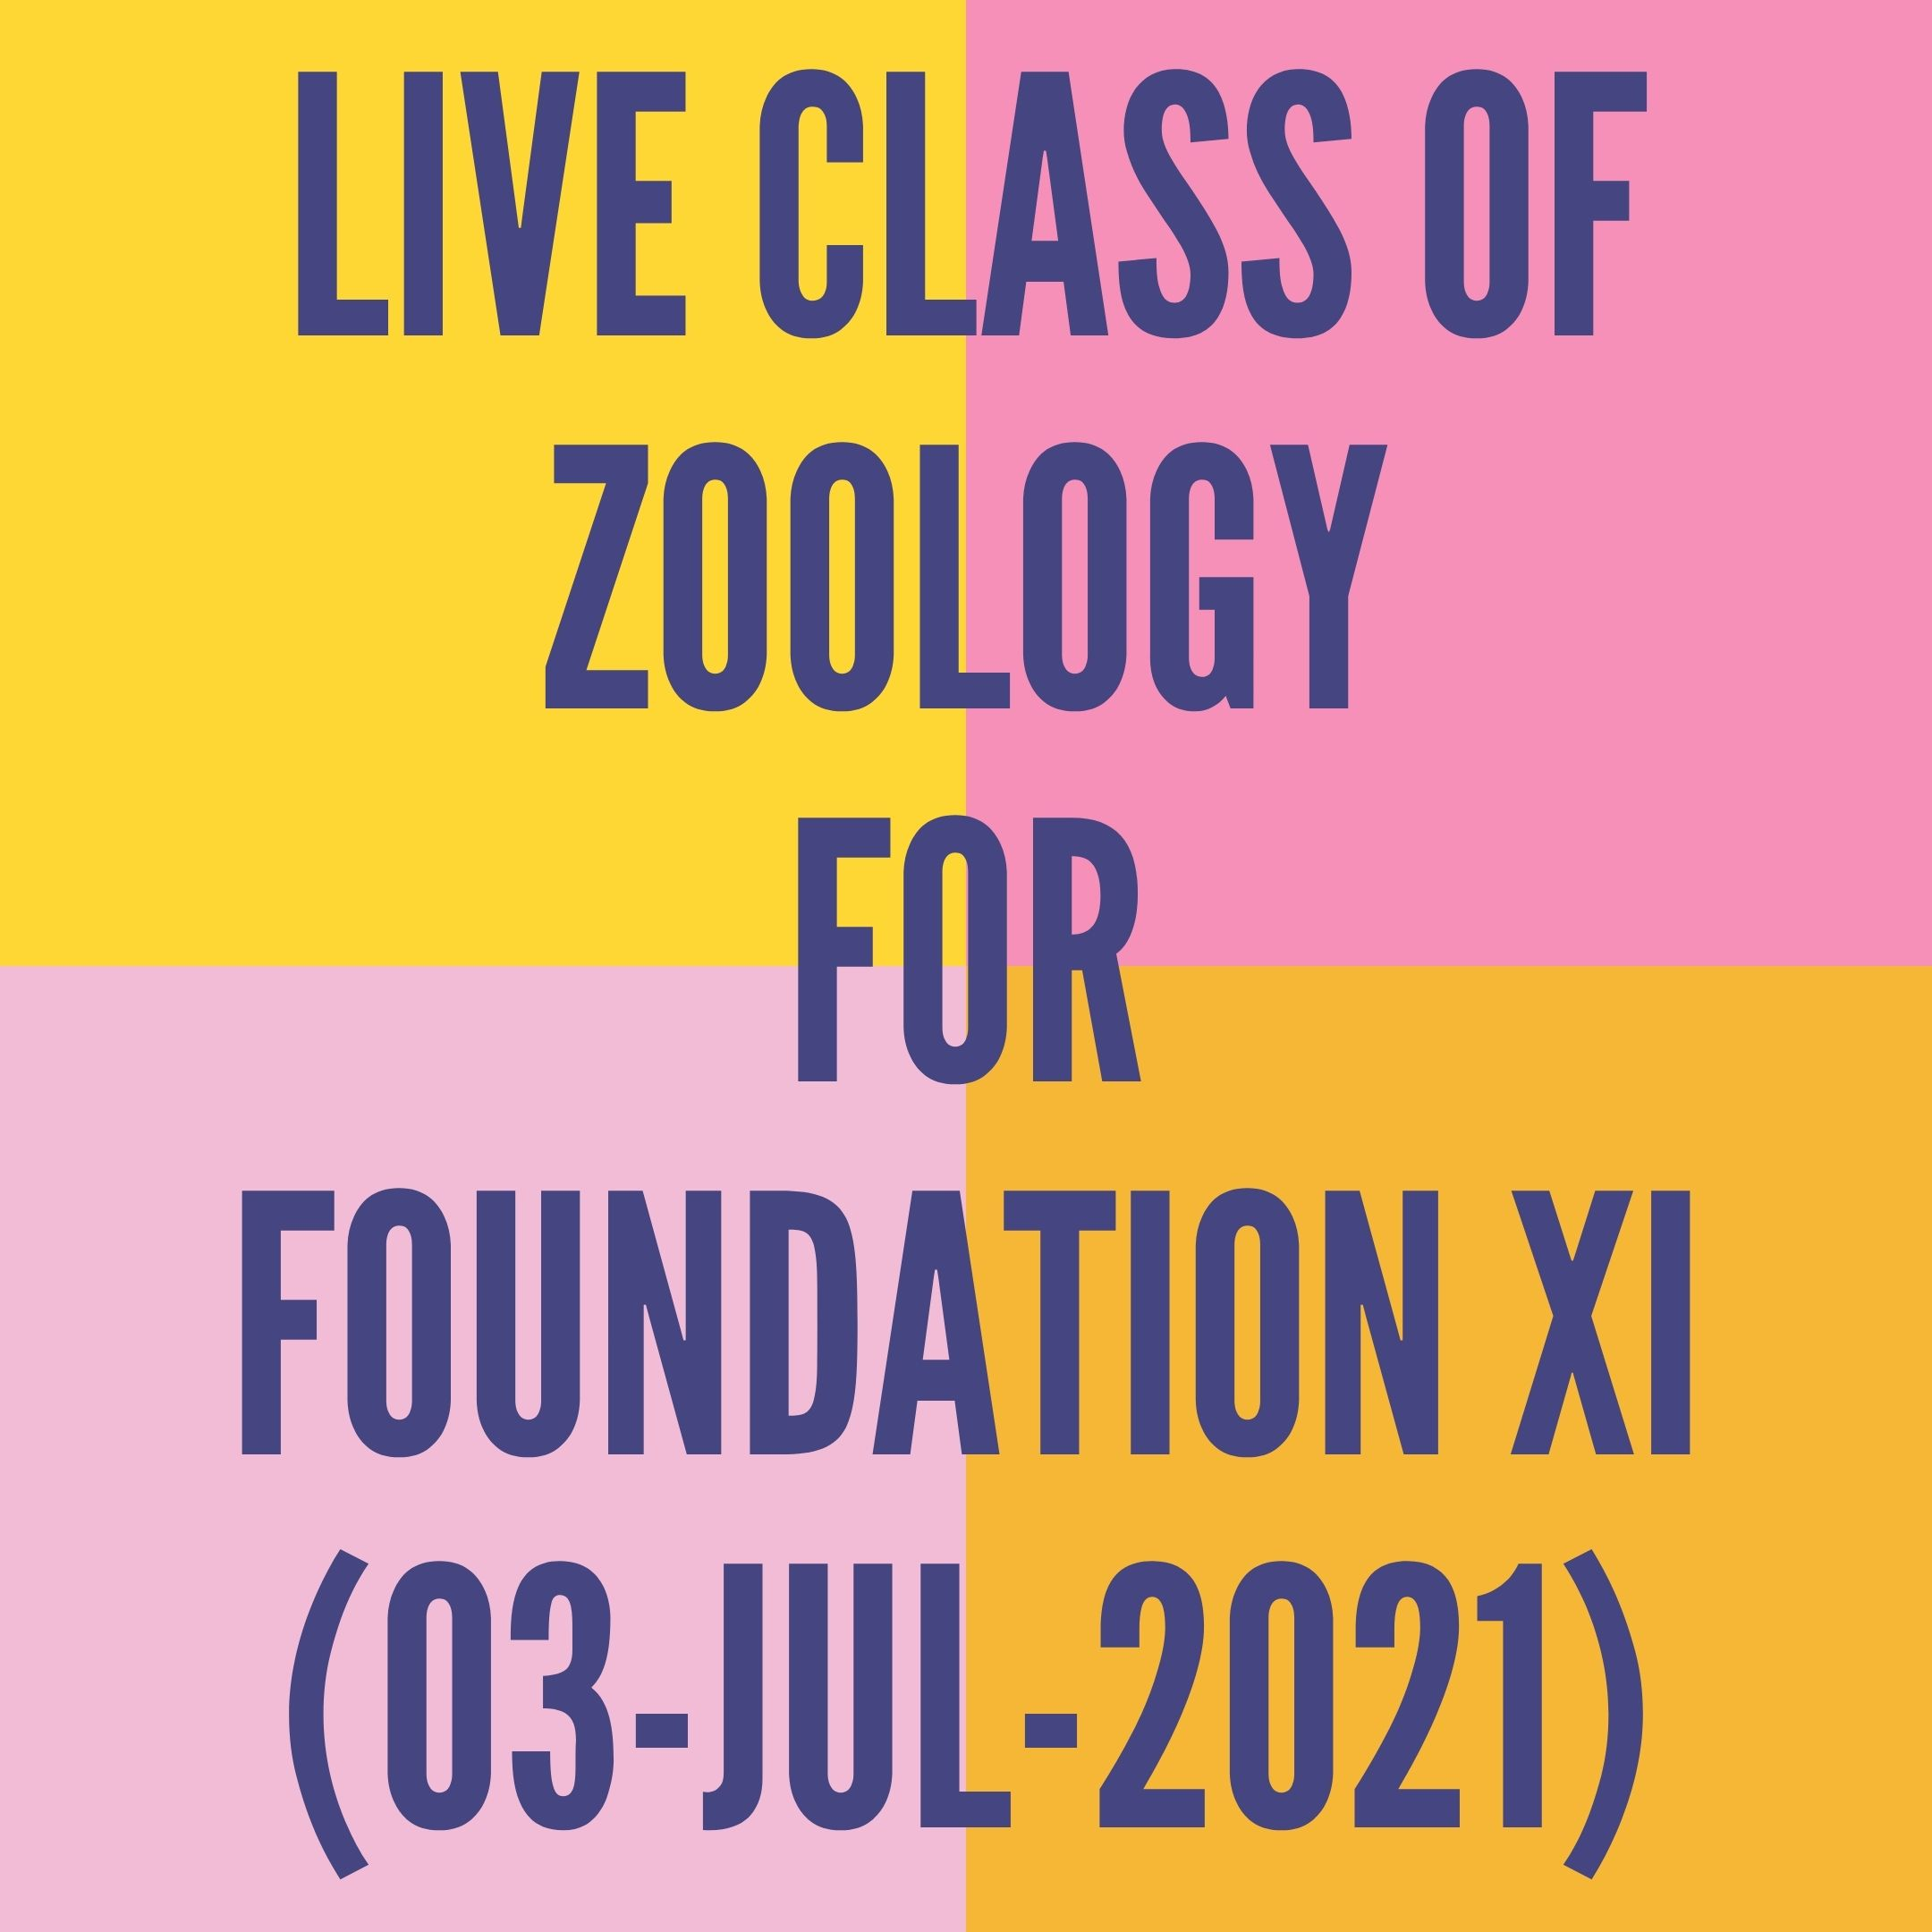 LIVE CLASS OF ZOOLOGY FOR FOUNDATION XI (03-JUL-2021) DIGESTIVE SYSTEM